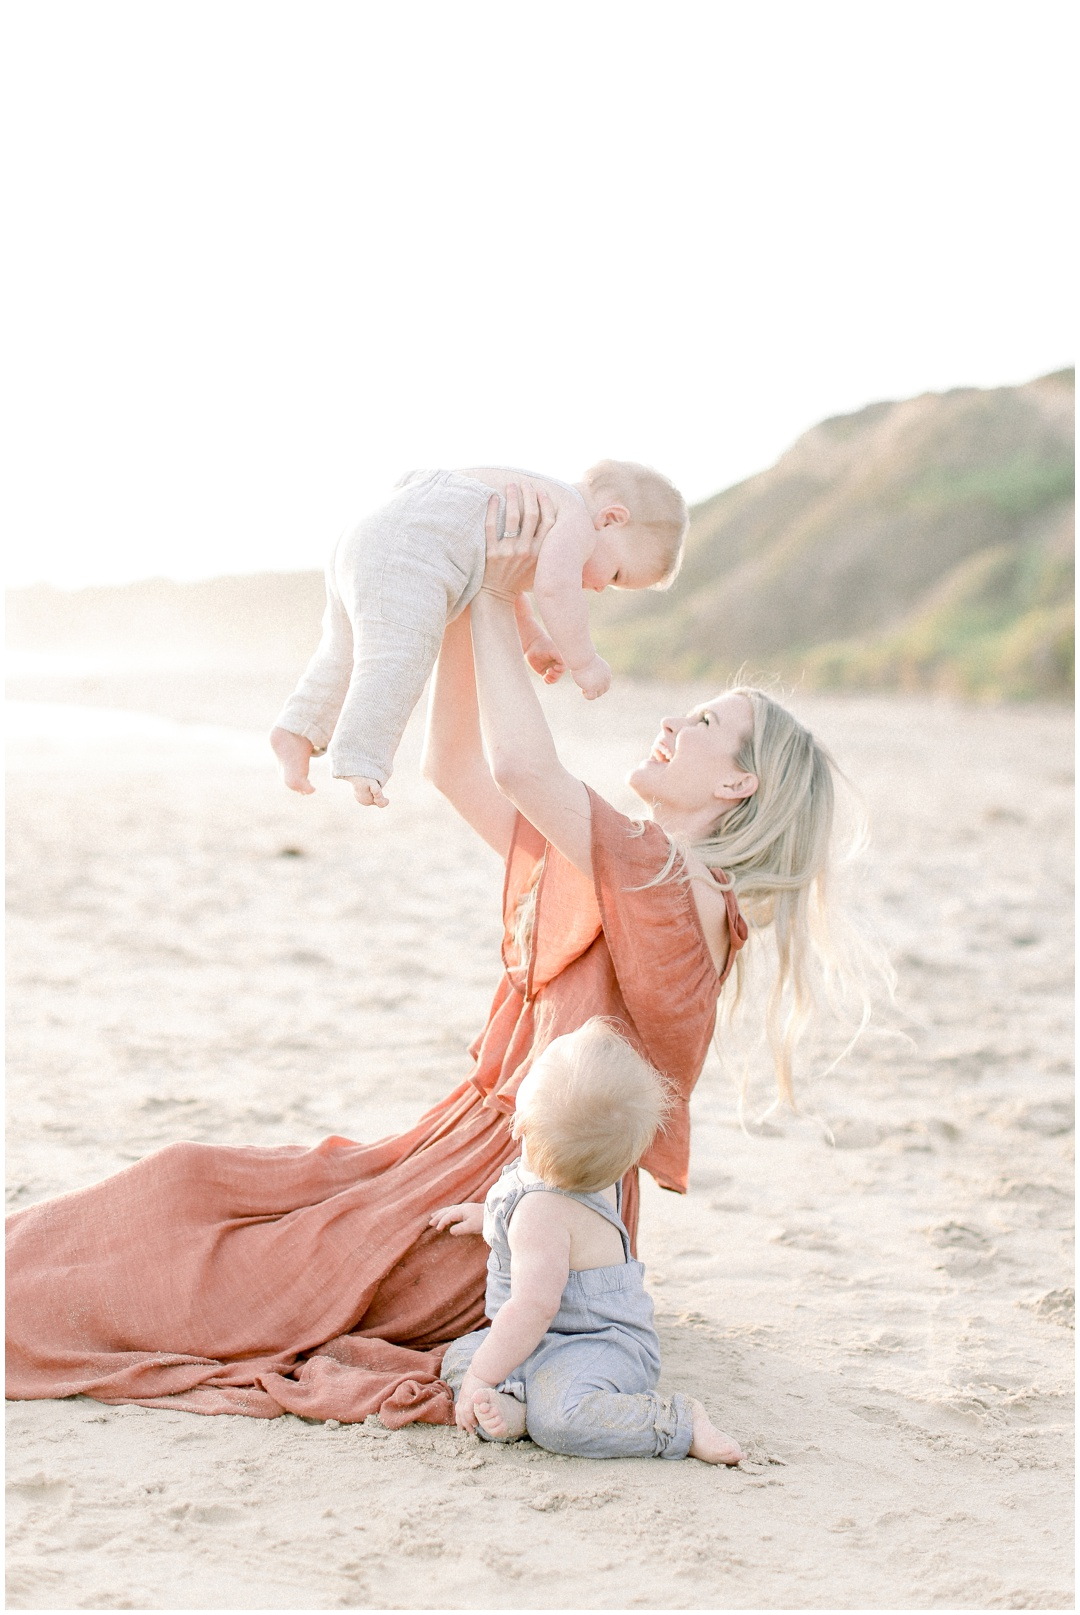 Newport_Beach_Newborn_Light_Airy_Natural_Photographer_Newport_Beach_Photographer_Orange_County_Family_Photographer_Cori_Kleckner_Photography_Huntington_Beach_Photographer_Family_OC_Newborn_Kelly_Bandak_Nik_Bandak__3510.jpg